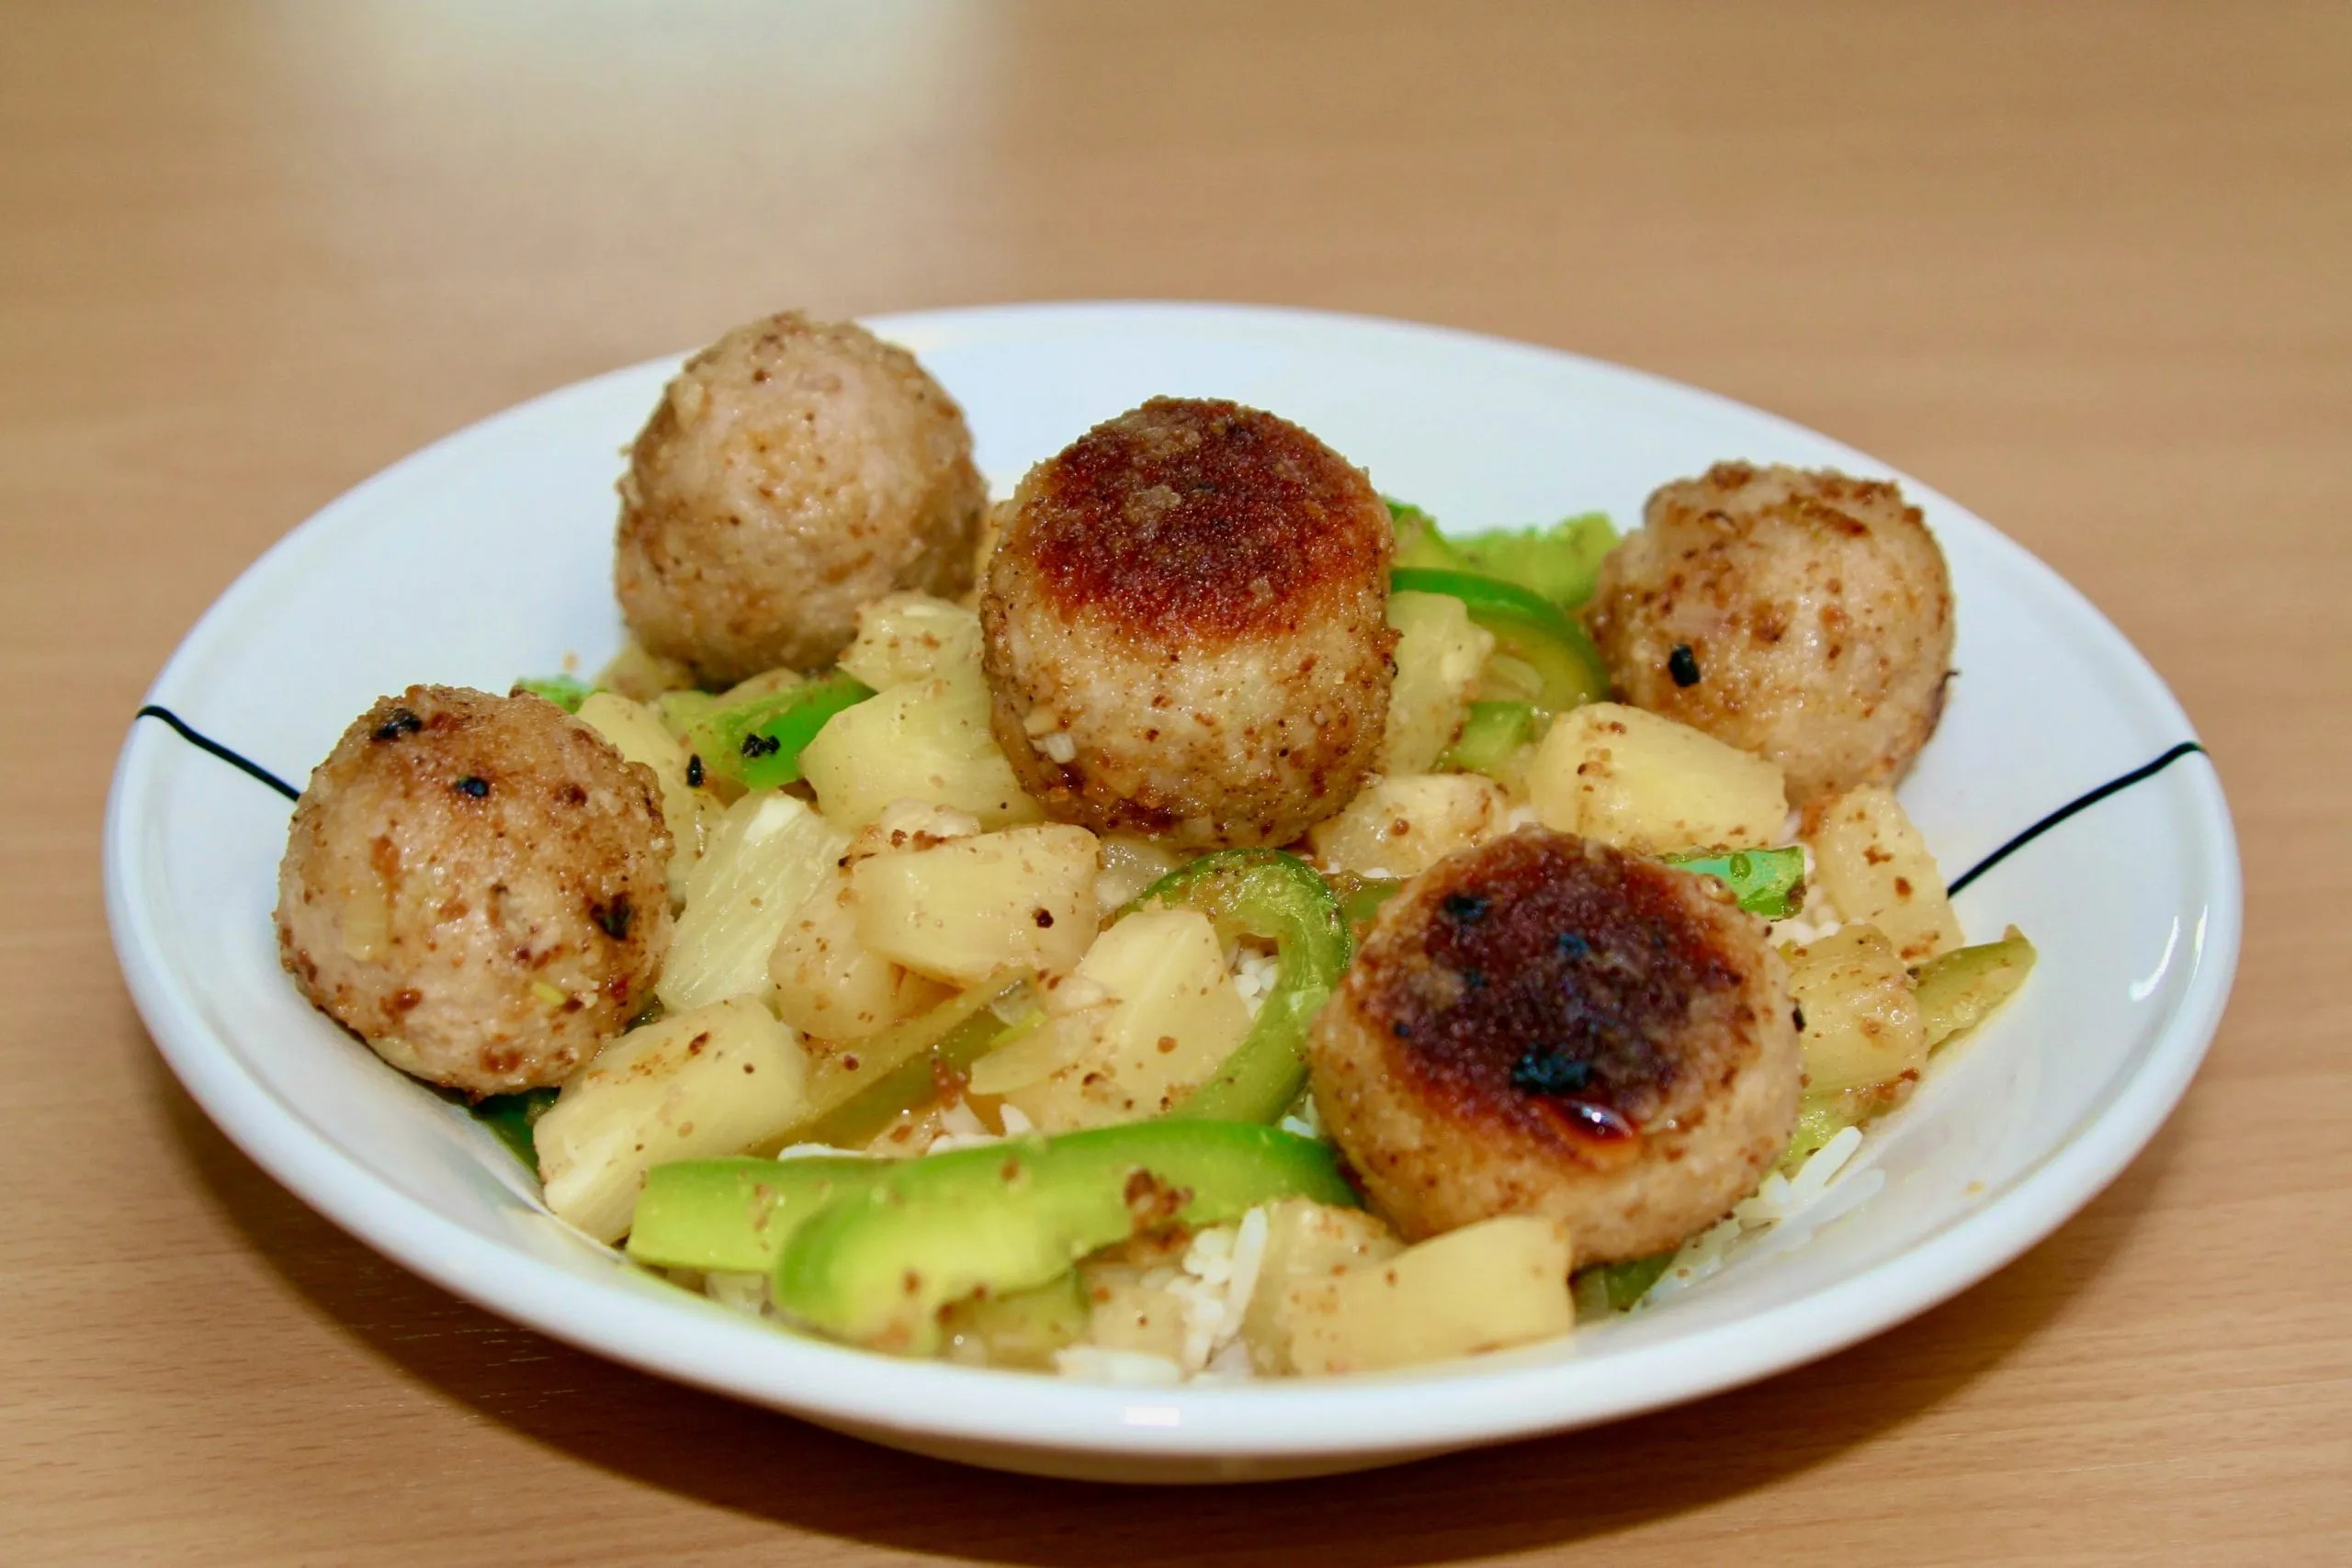 meatballs with pineapple and bell pepper from 2007